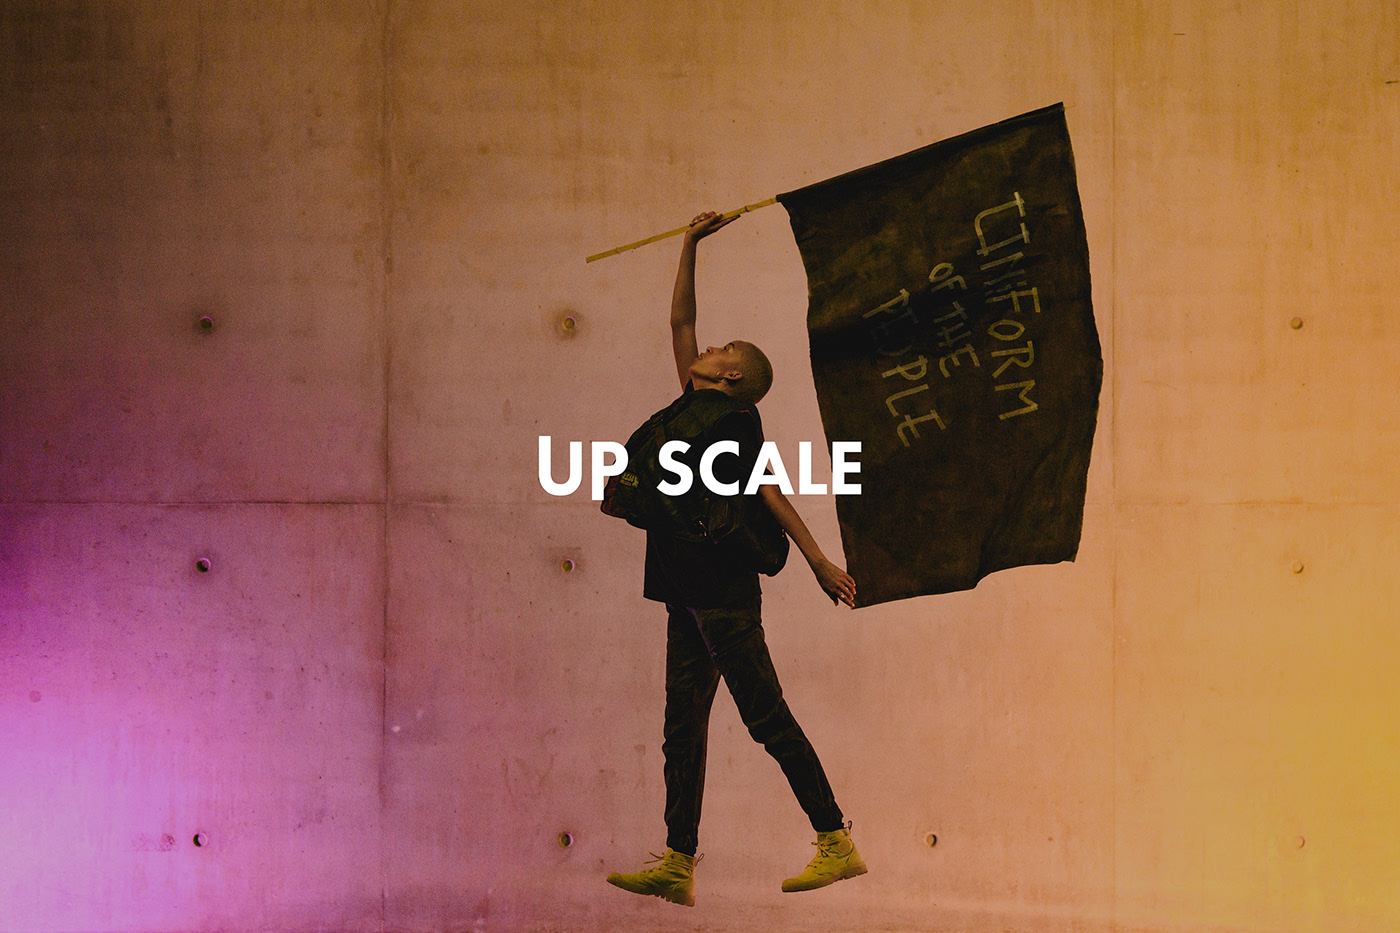 Up Scale